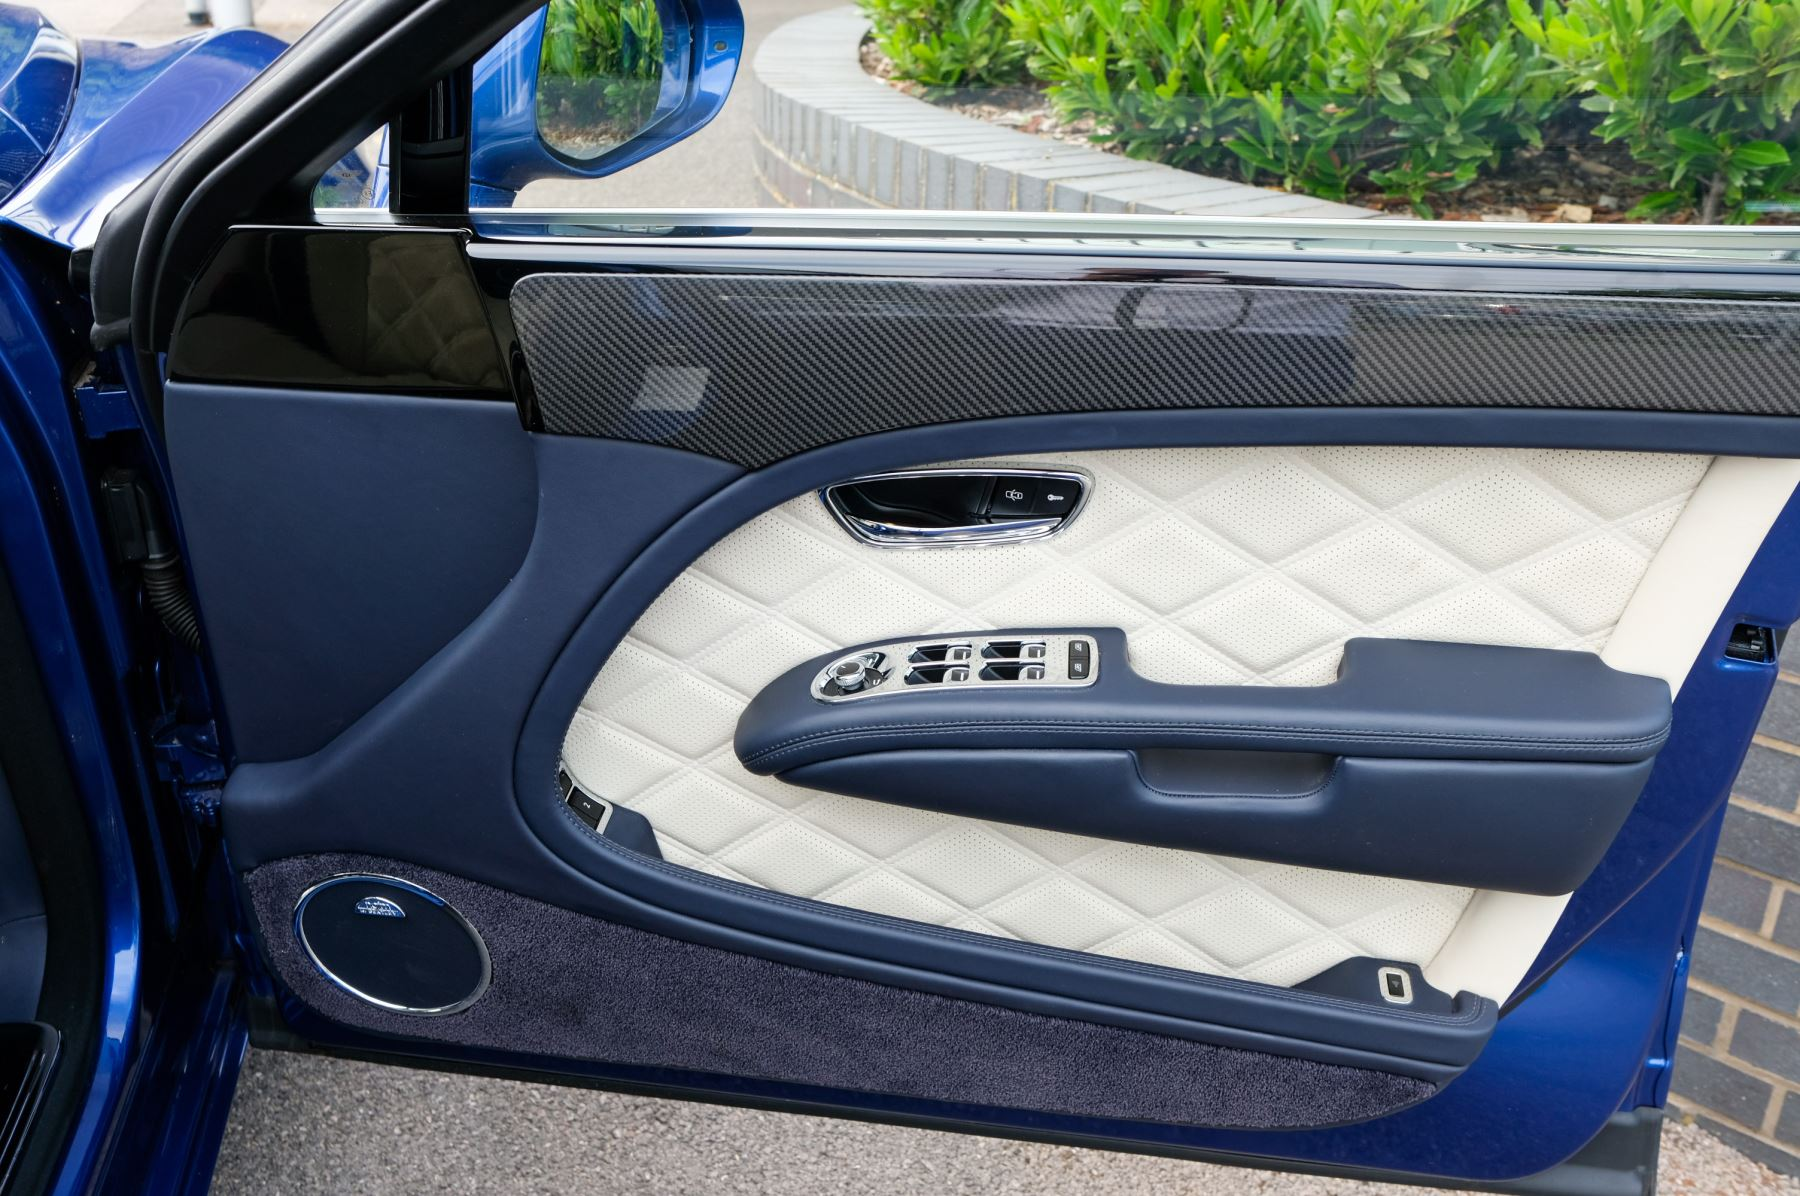 Bentley Mulsanne Speed 6.8 V8 Speed - Speed Premier and Entertainment Specification image 18